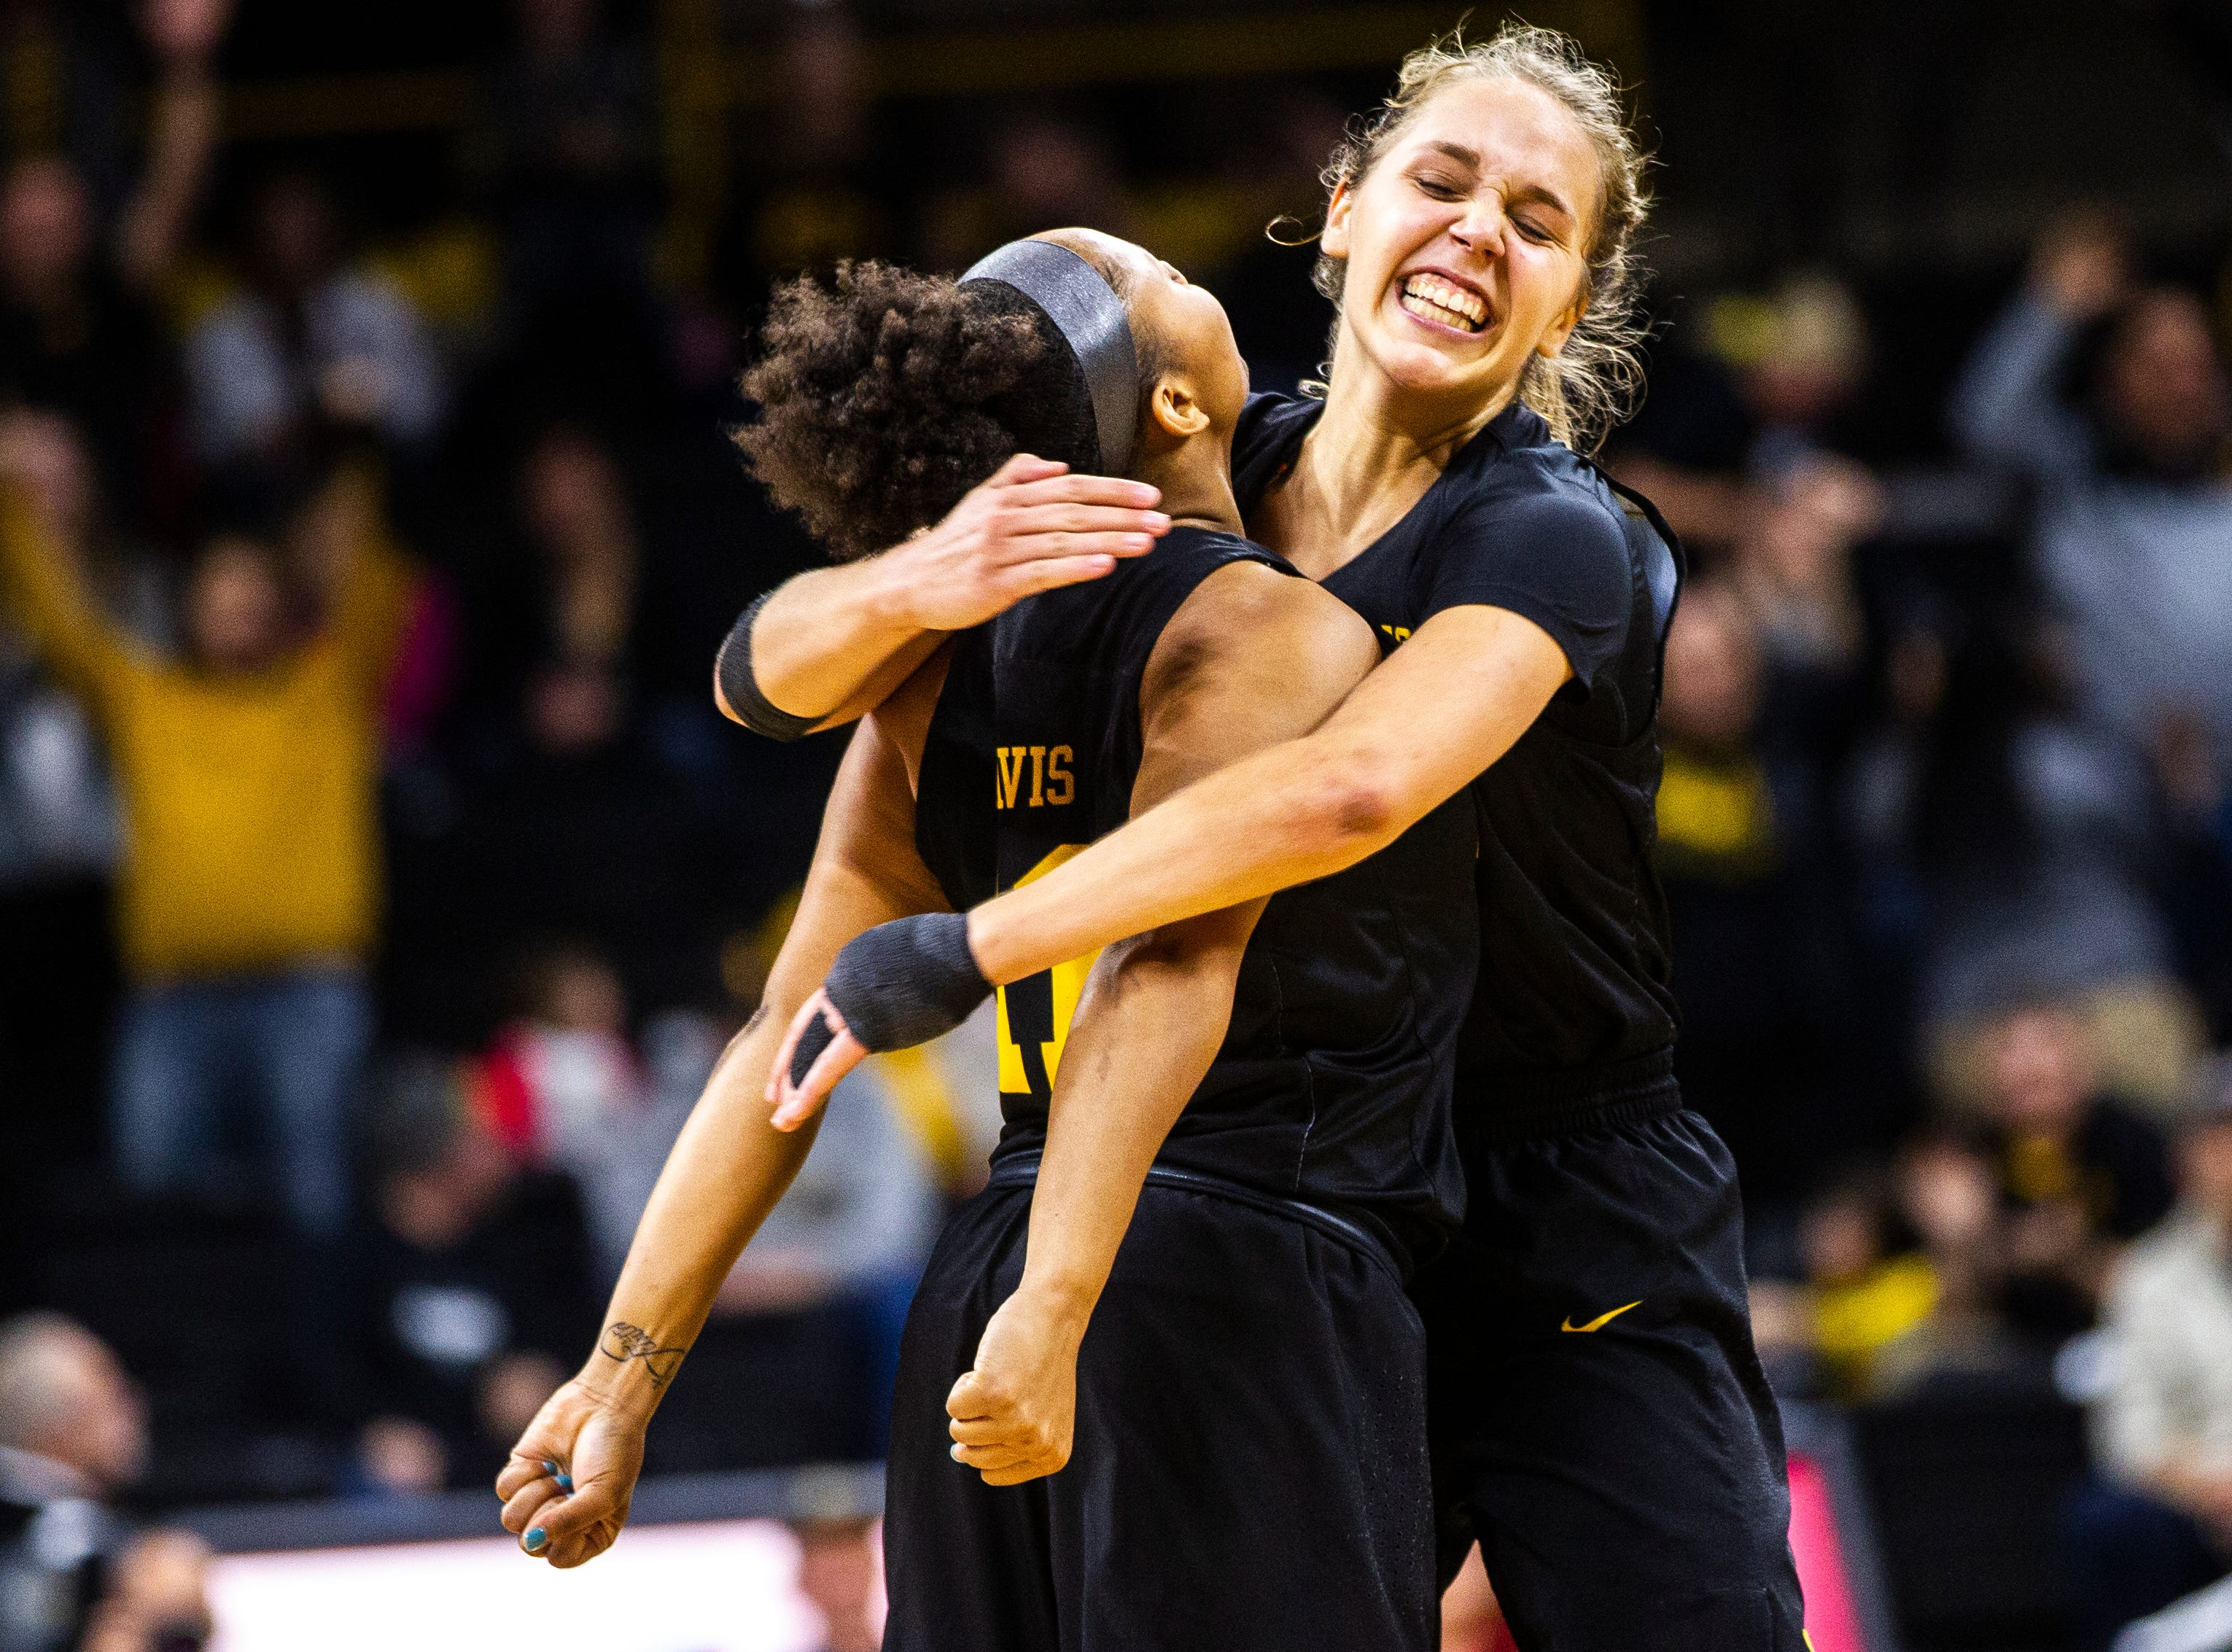 Iowa guard Kathleen Doyle (right) embraces Iowa guard Tania Davis after she made a 3-point basket during a Cy-Hawk series NCAA women's basketball game on Wednesday, Dec. 5, 2018, at Carver-Hawkeye Arena in Iowa City.